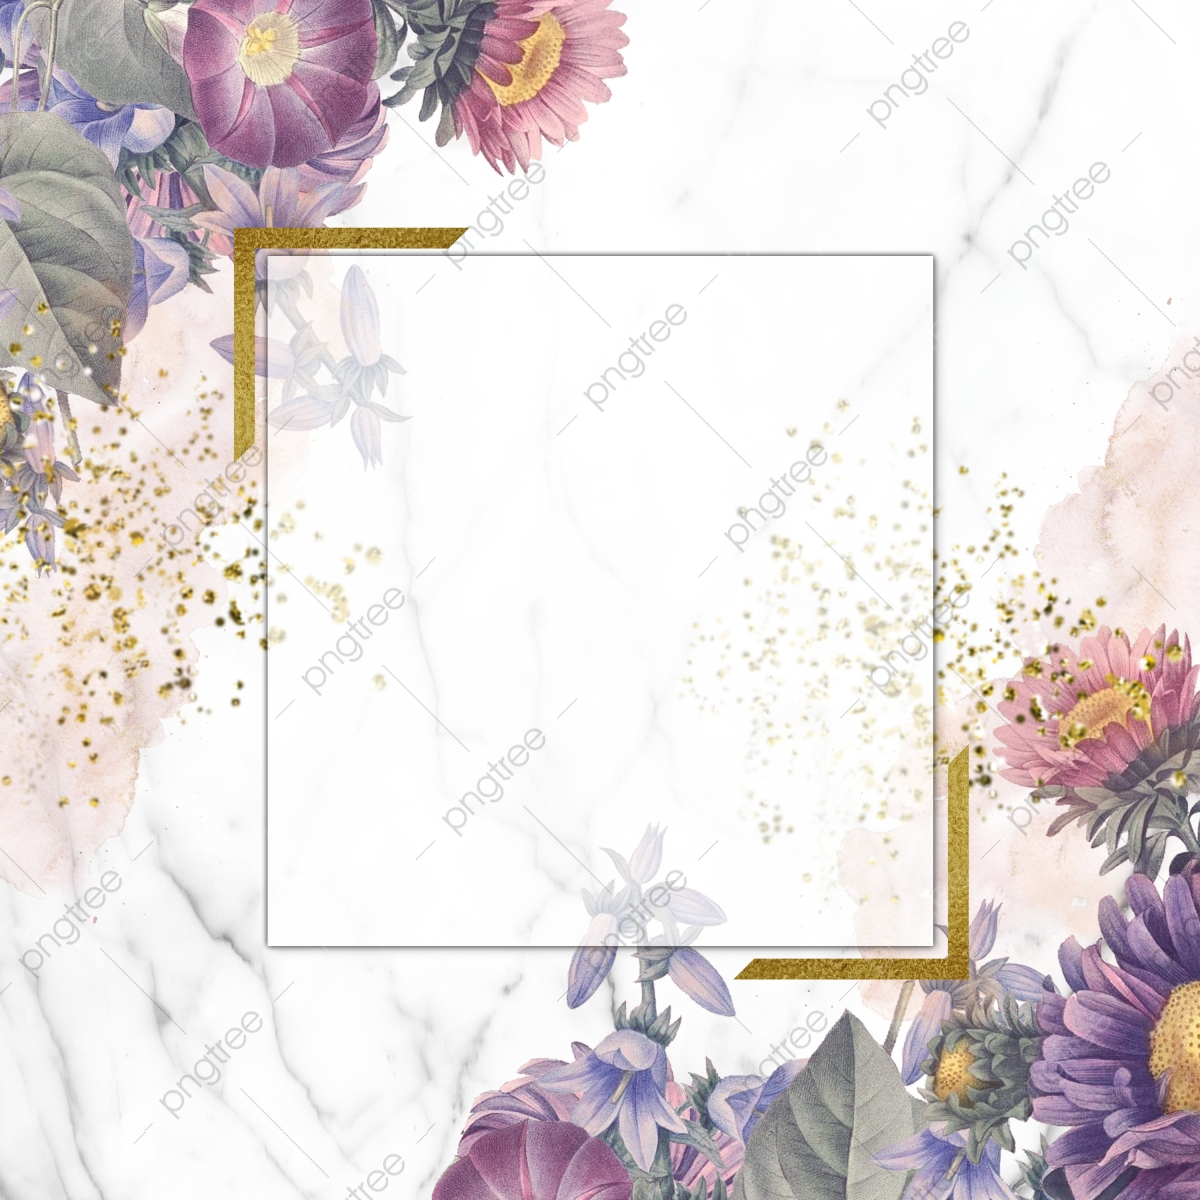 Floral Designs Png Images Vector And Psd Files Free Download On Pngtree